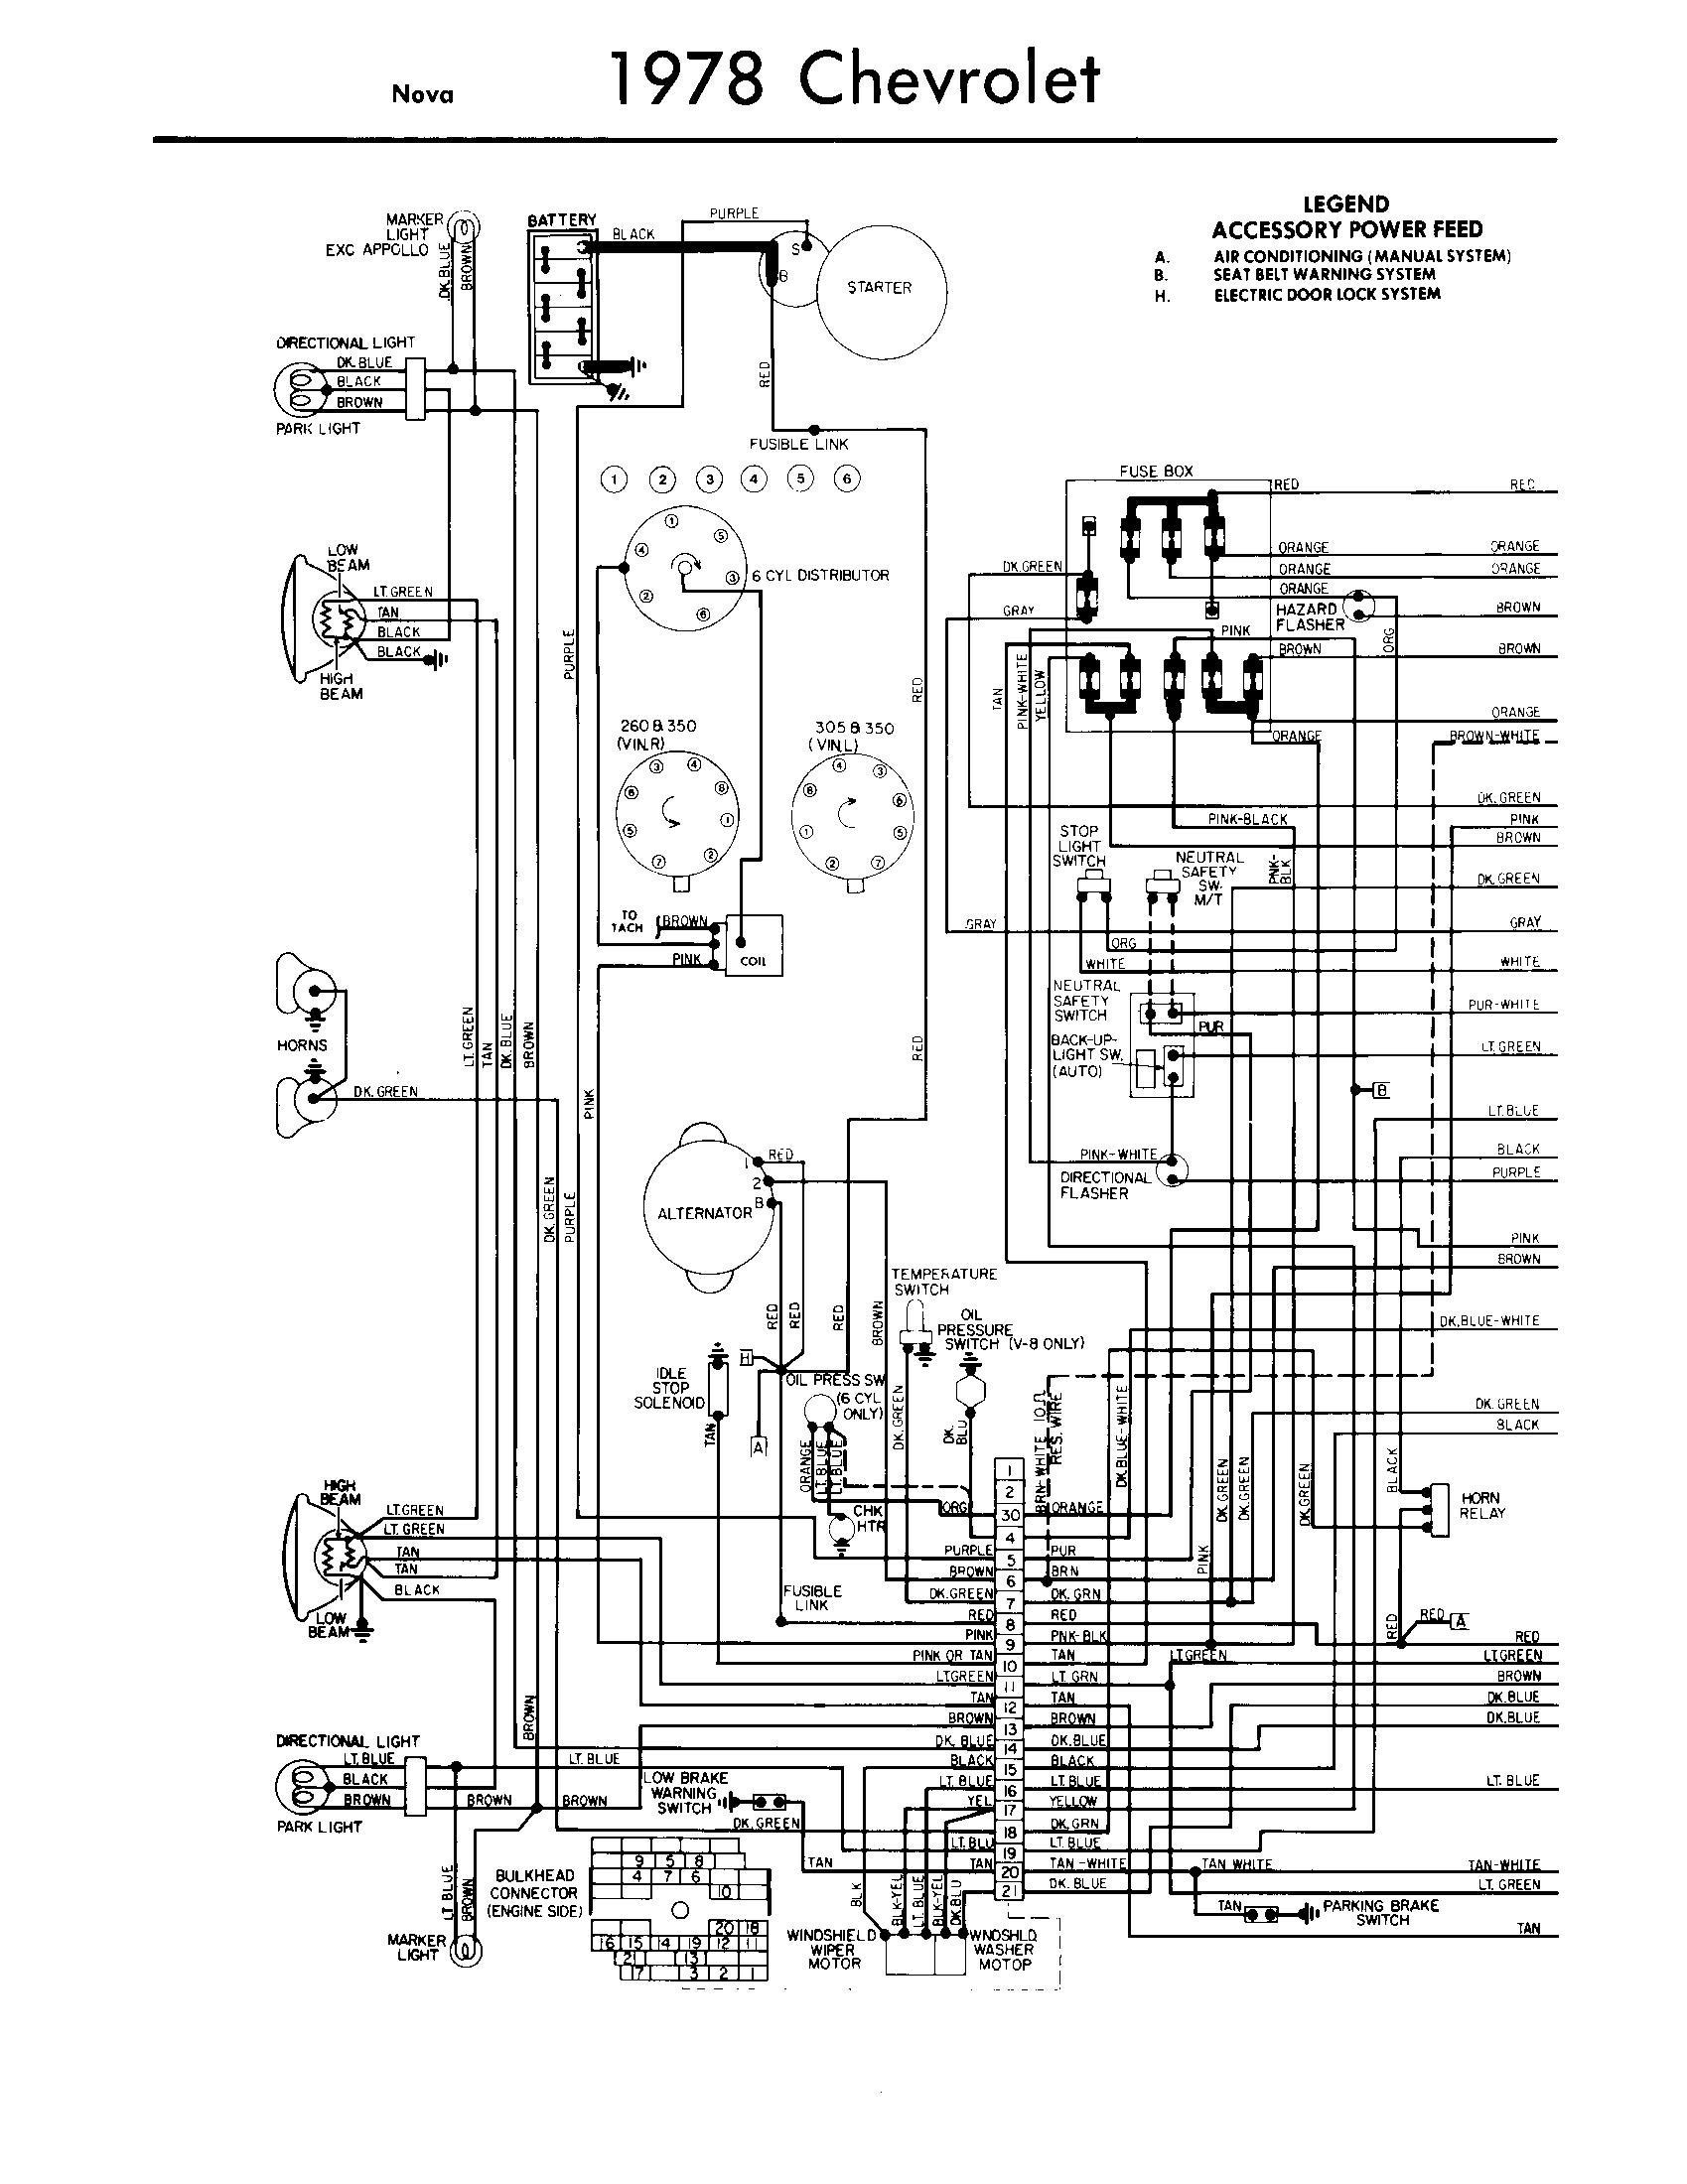 1982 chevrolet truck wiring diagram of dol motor starter 1978 toyota pickup fuse schematic datsun library nissan maxima fuel pump